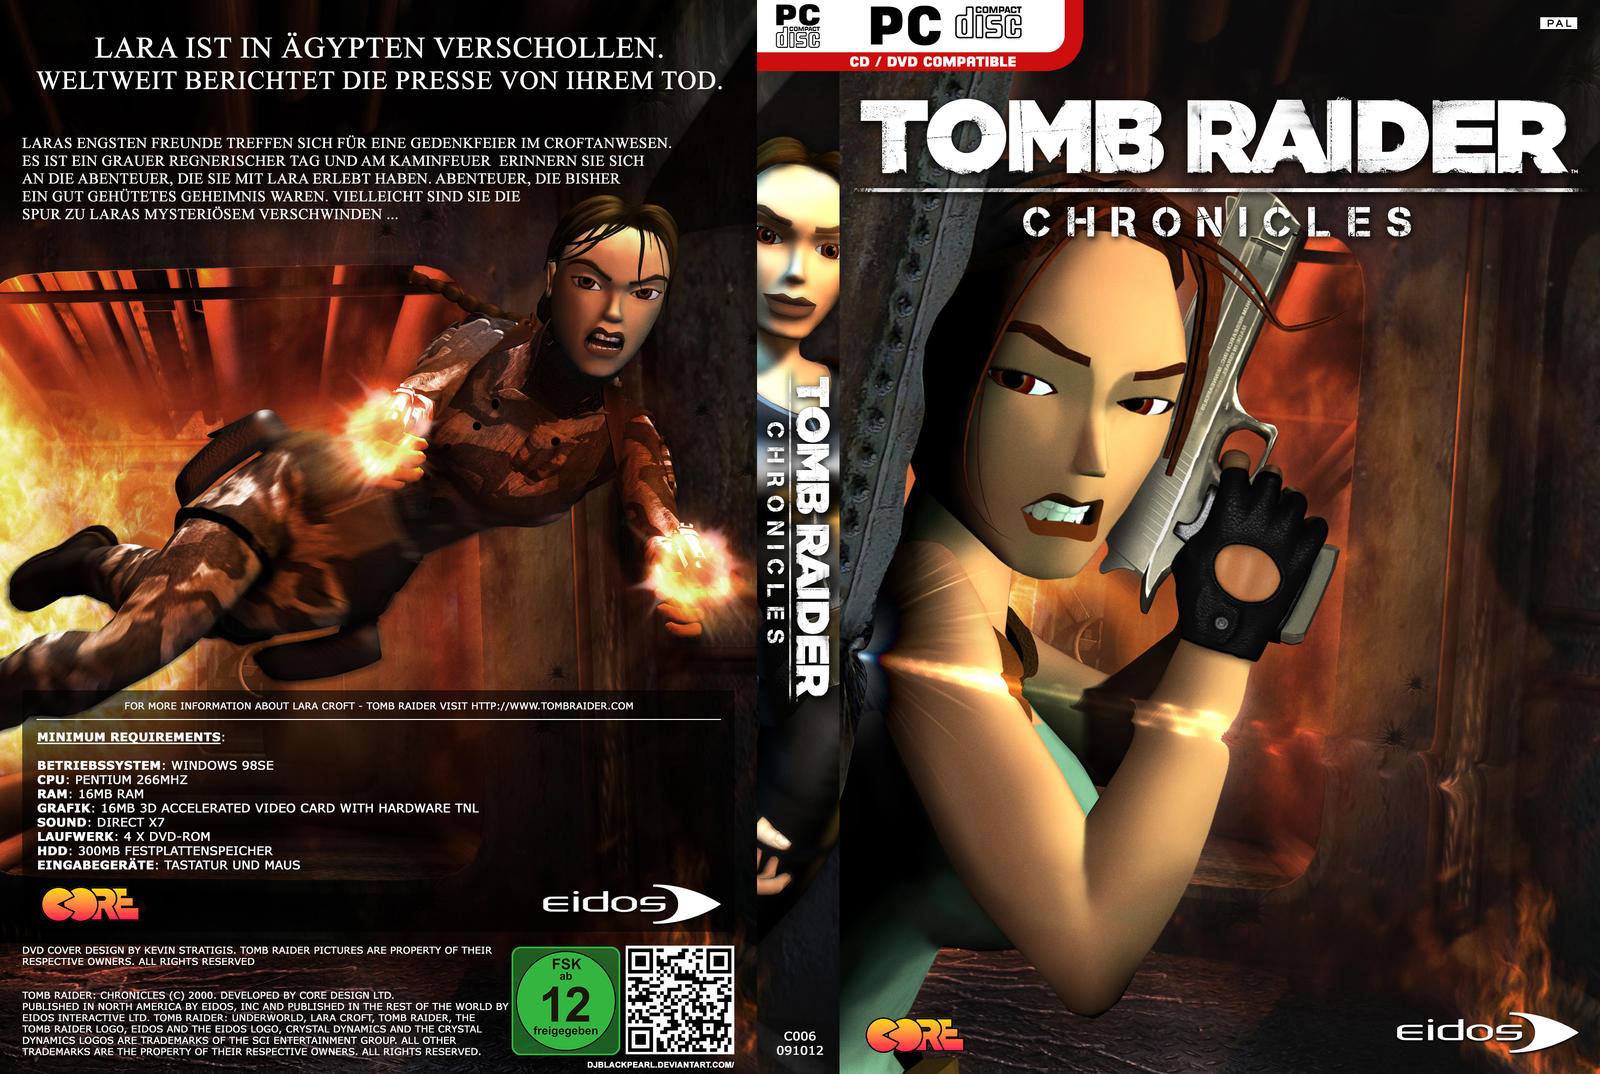 Tomb Raider: Chronicles - HQ Custom DVD Cover GER by ...